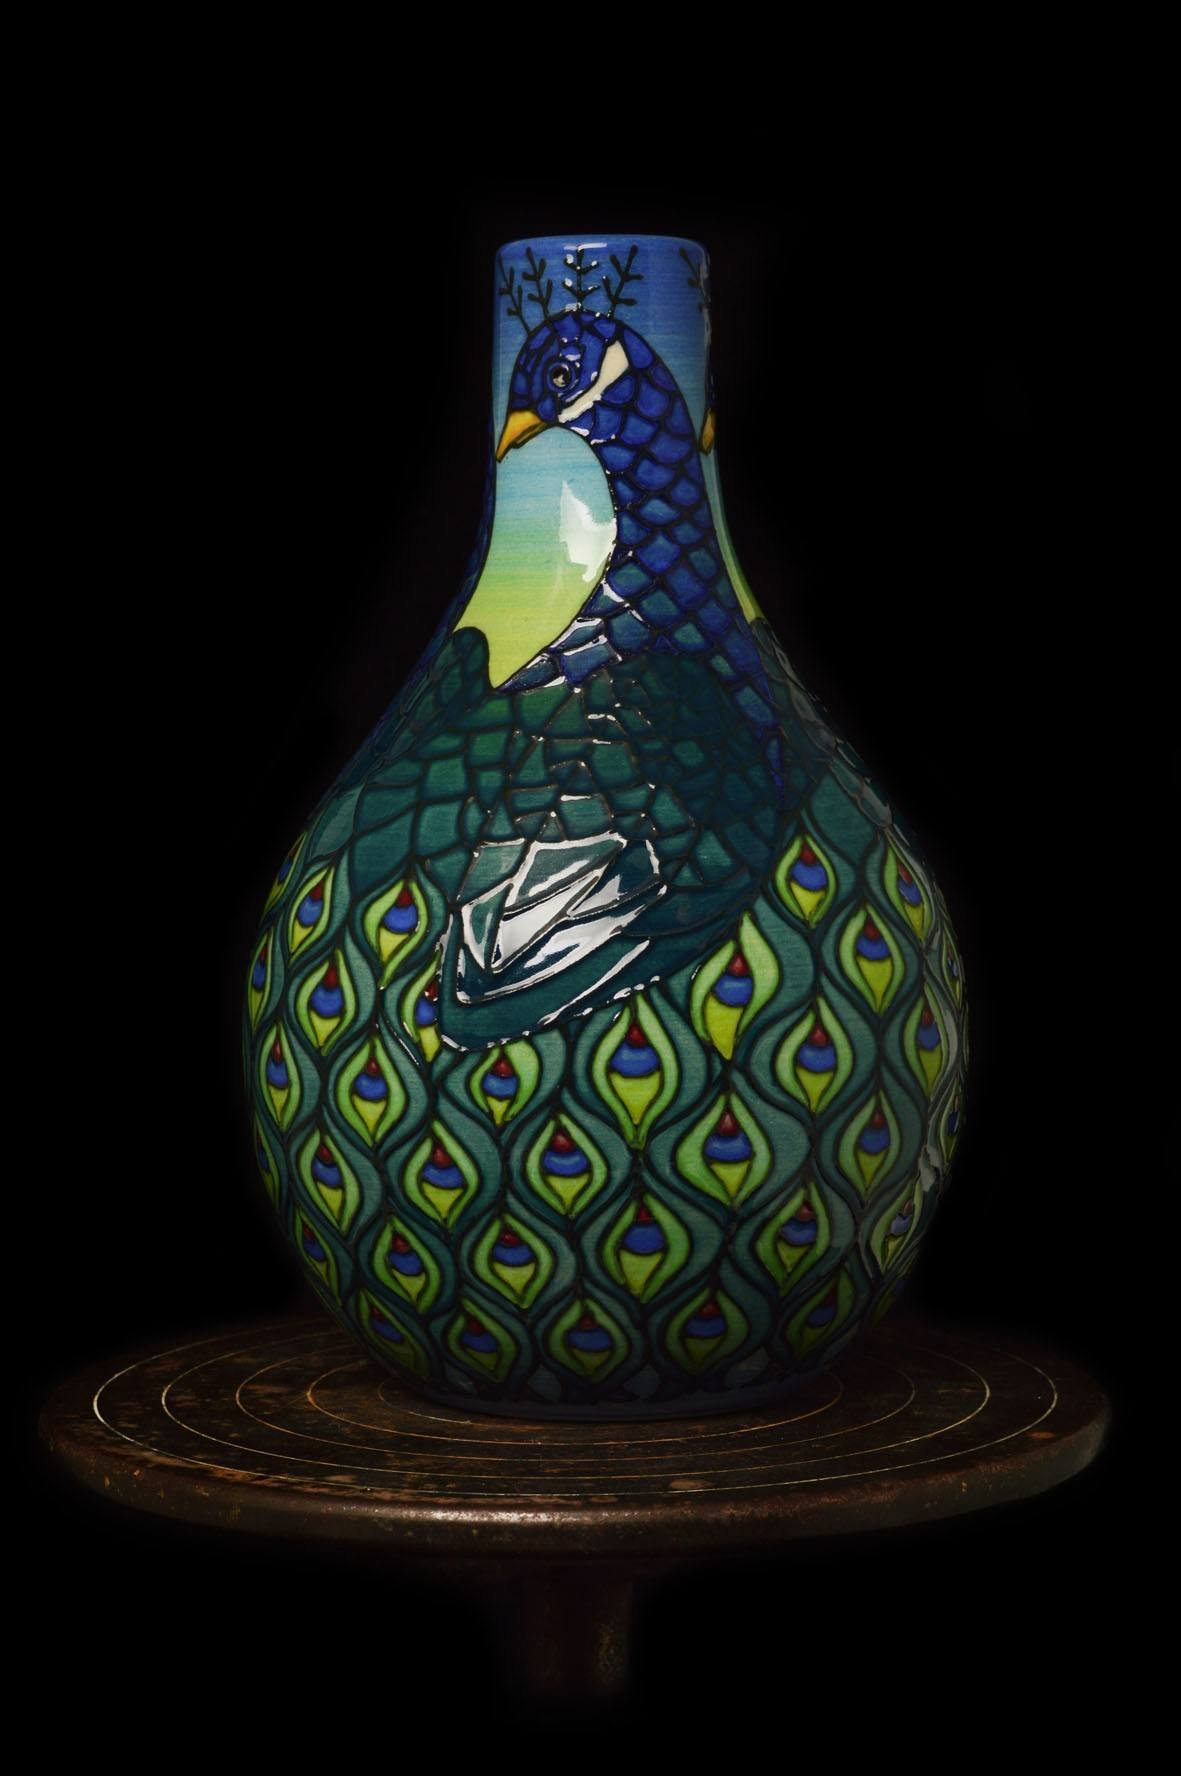 1417542451peacock-sf-bottle-7.jpg